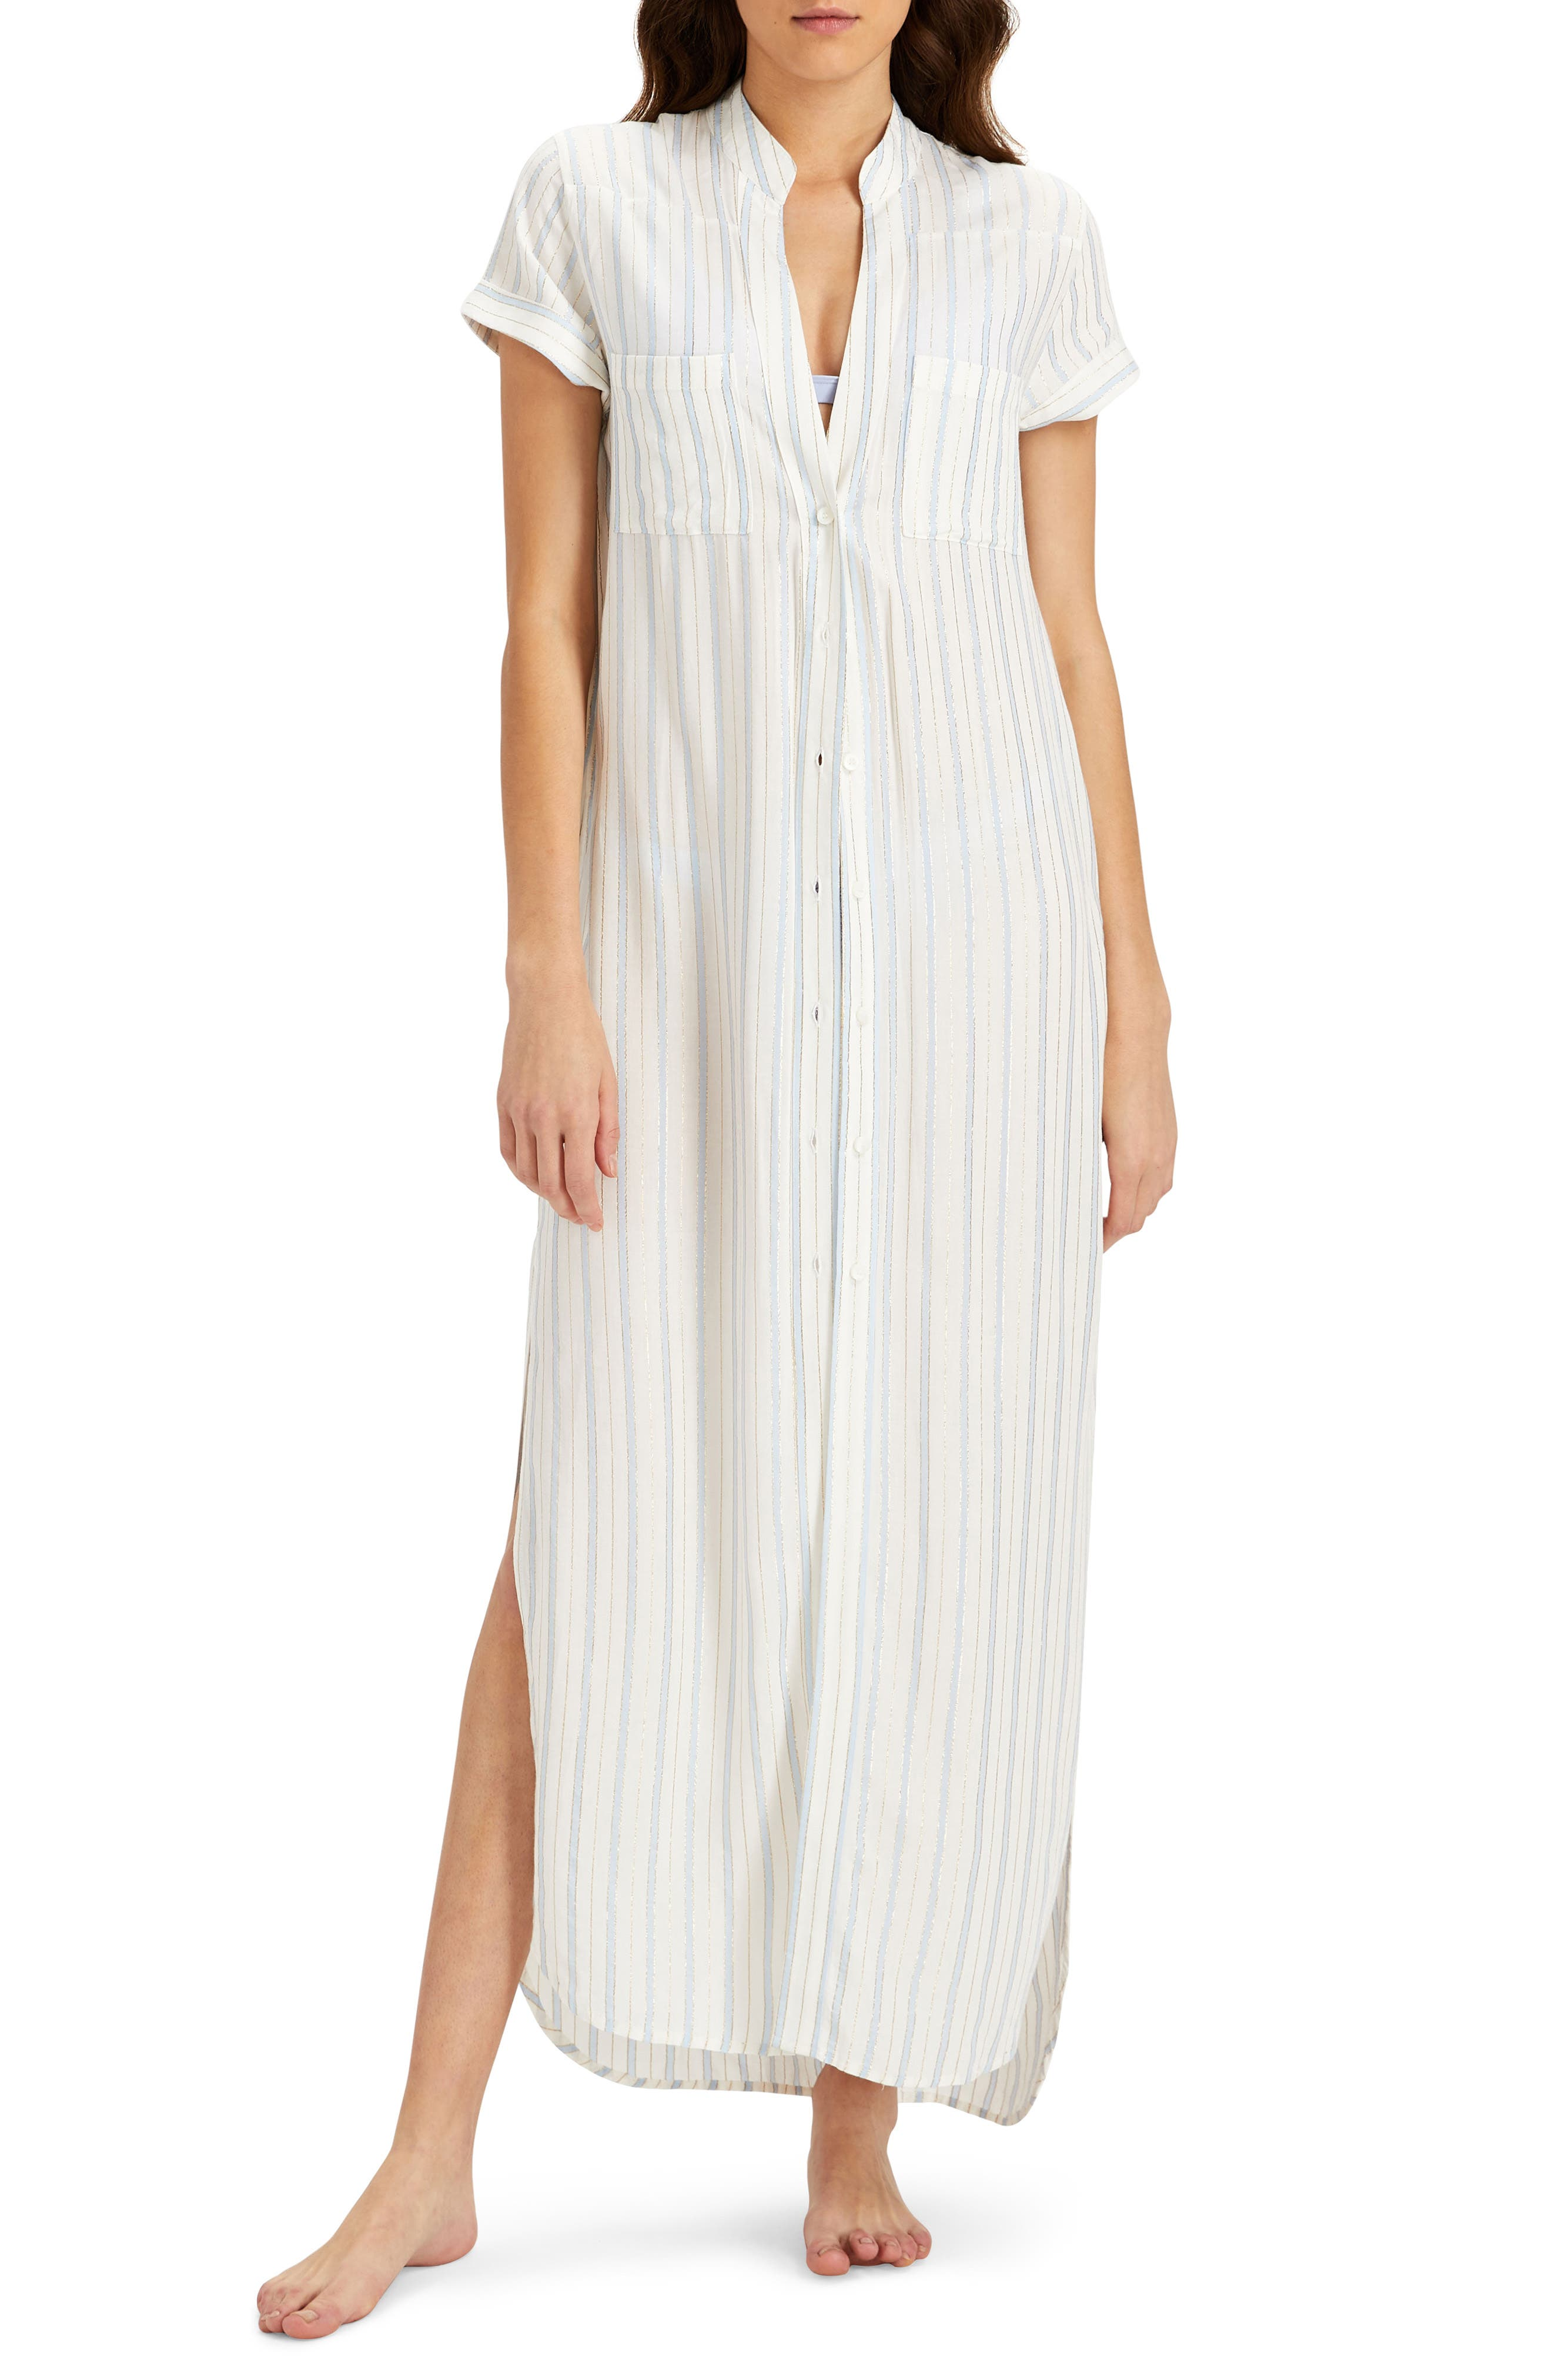 Alternate Image 1 Selected - Onia Kim Stripe Button Down Cover-Up Maxi Dress